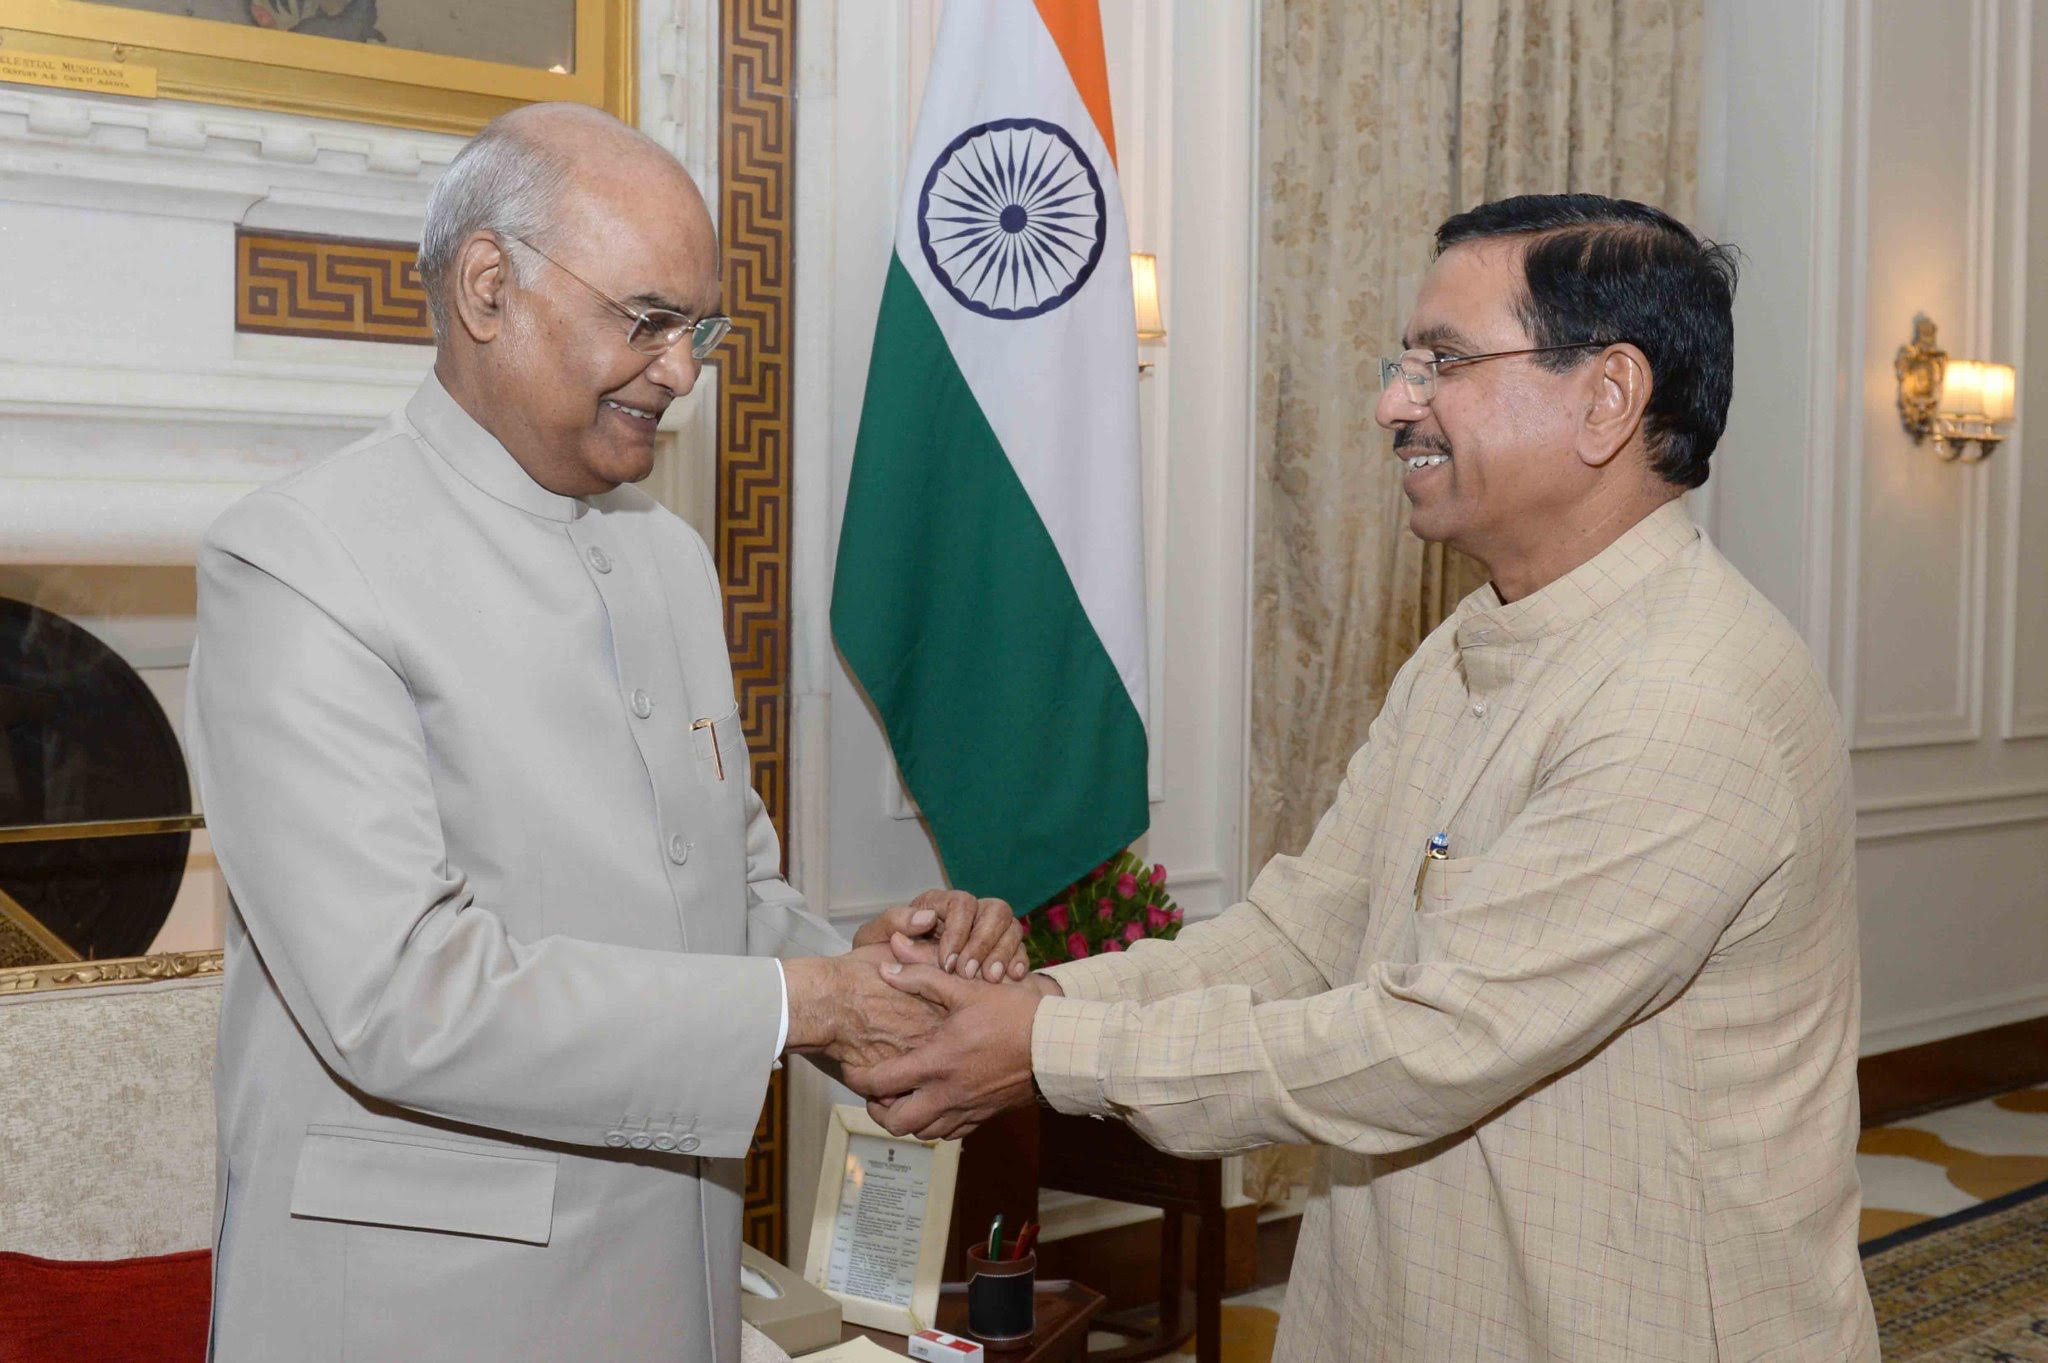 Shri Pralhad Joshi Hon'ble Minister Parliamentary Affairs made a courtesy visit to Hon'ble President of India